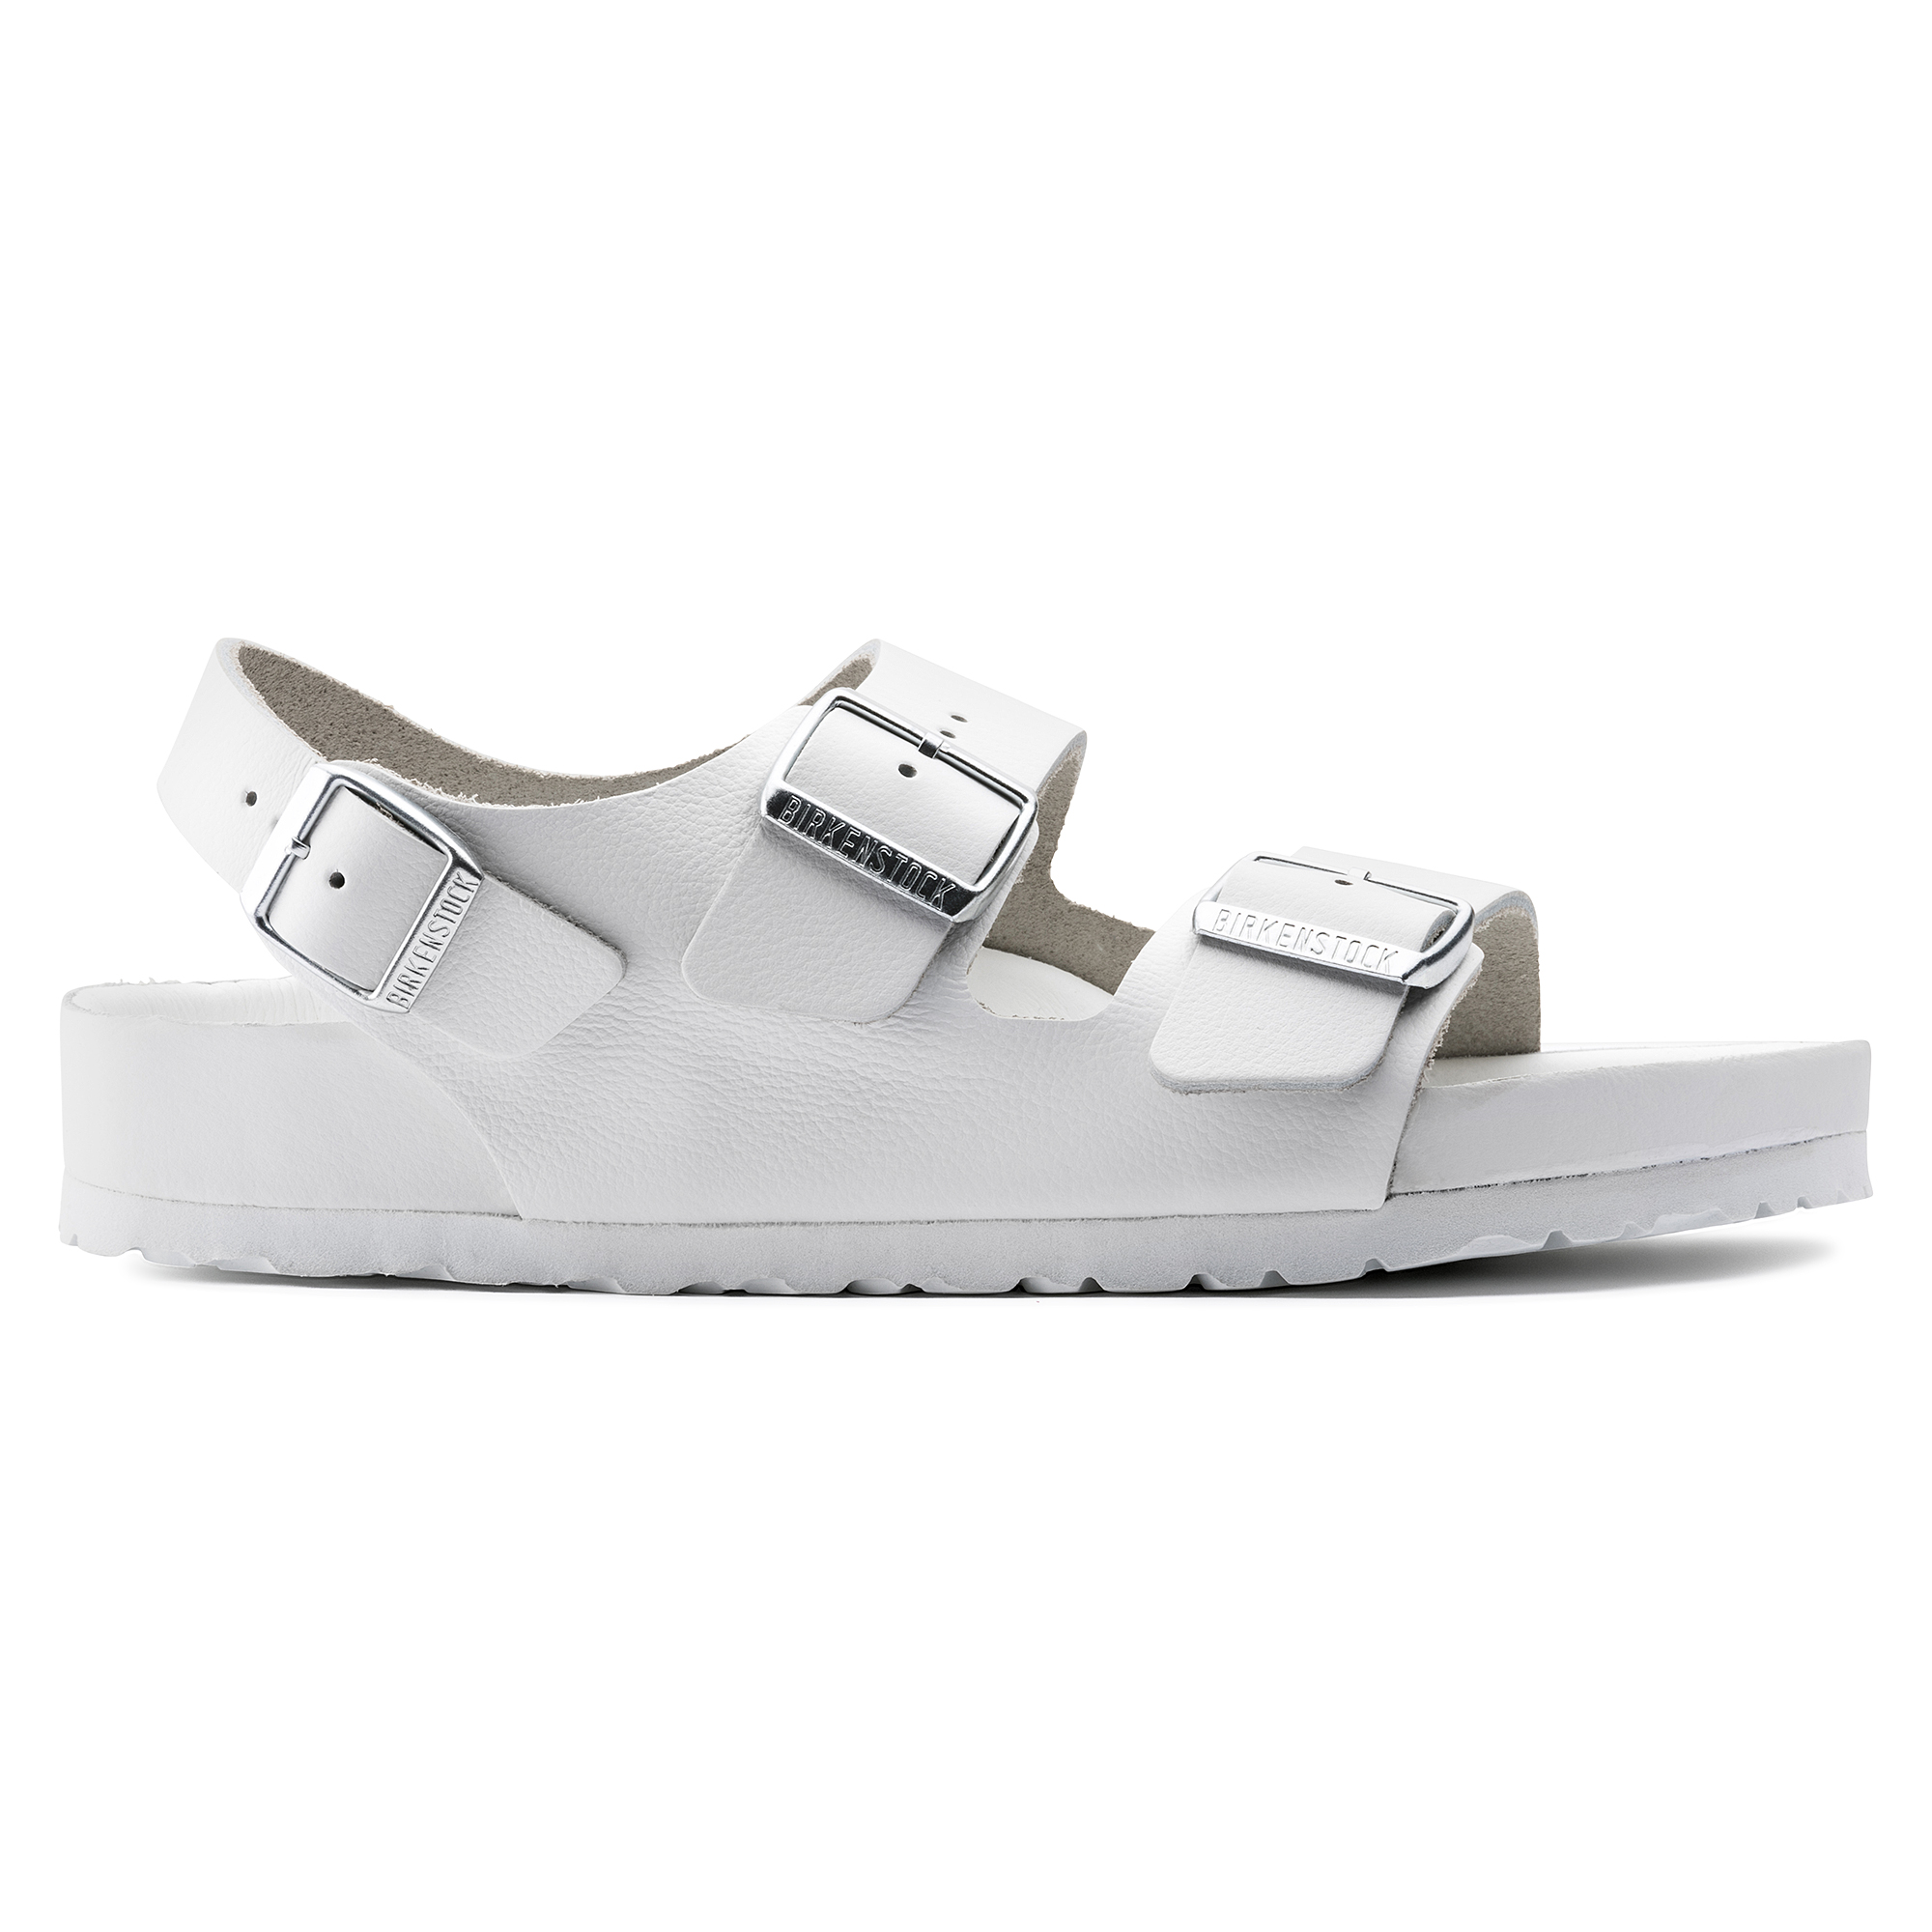 2c162f6ccc7 ... Milano Natural Leather White